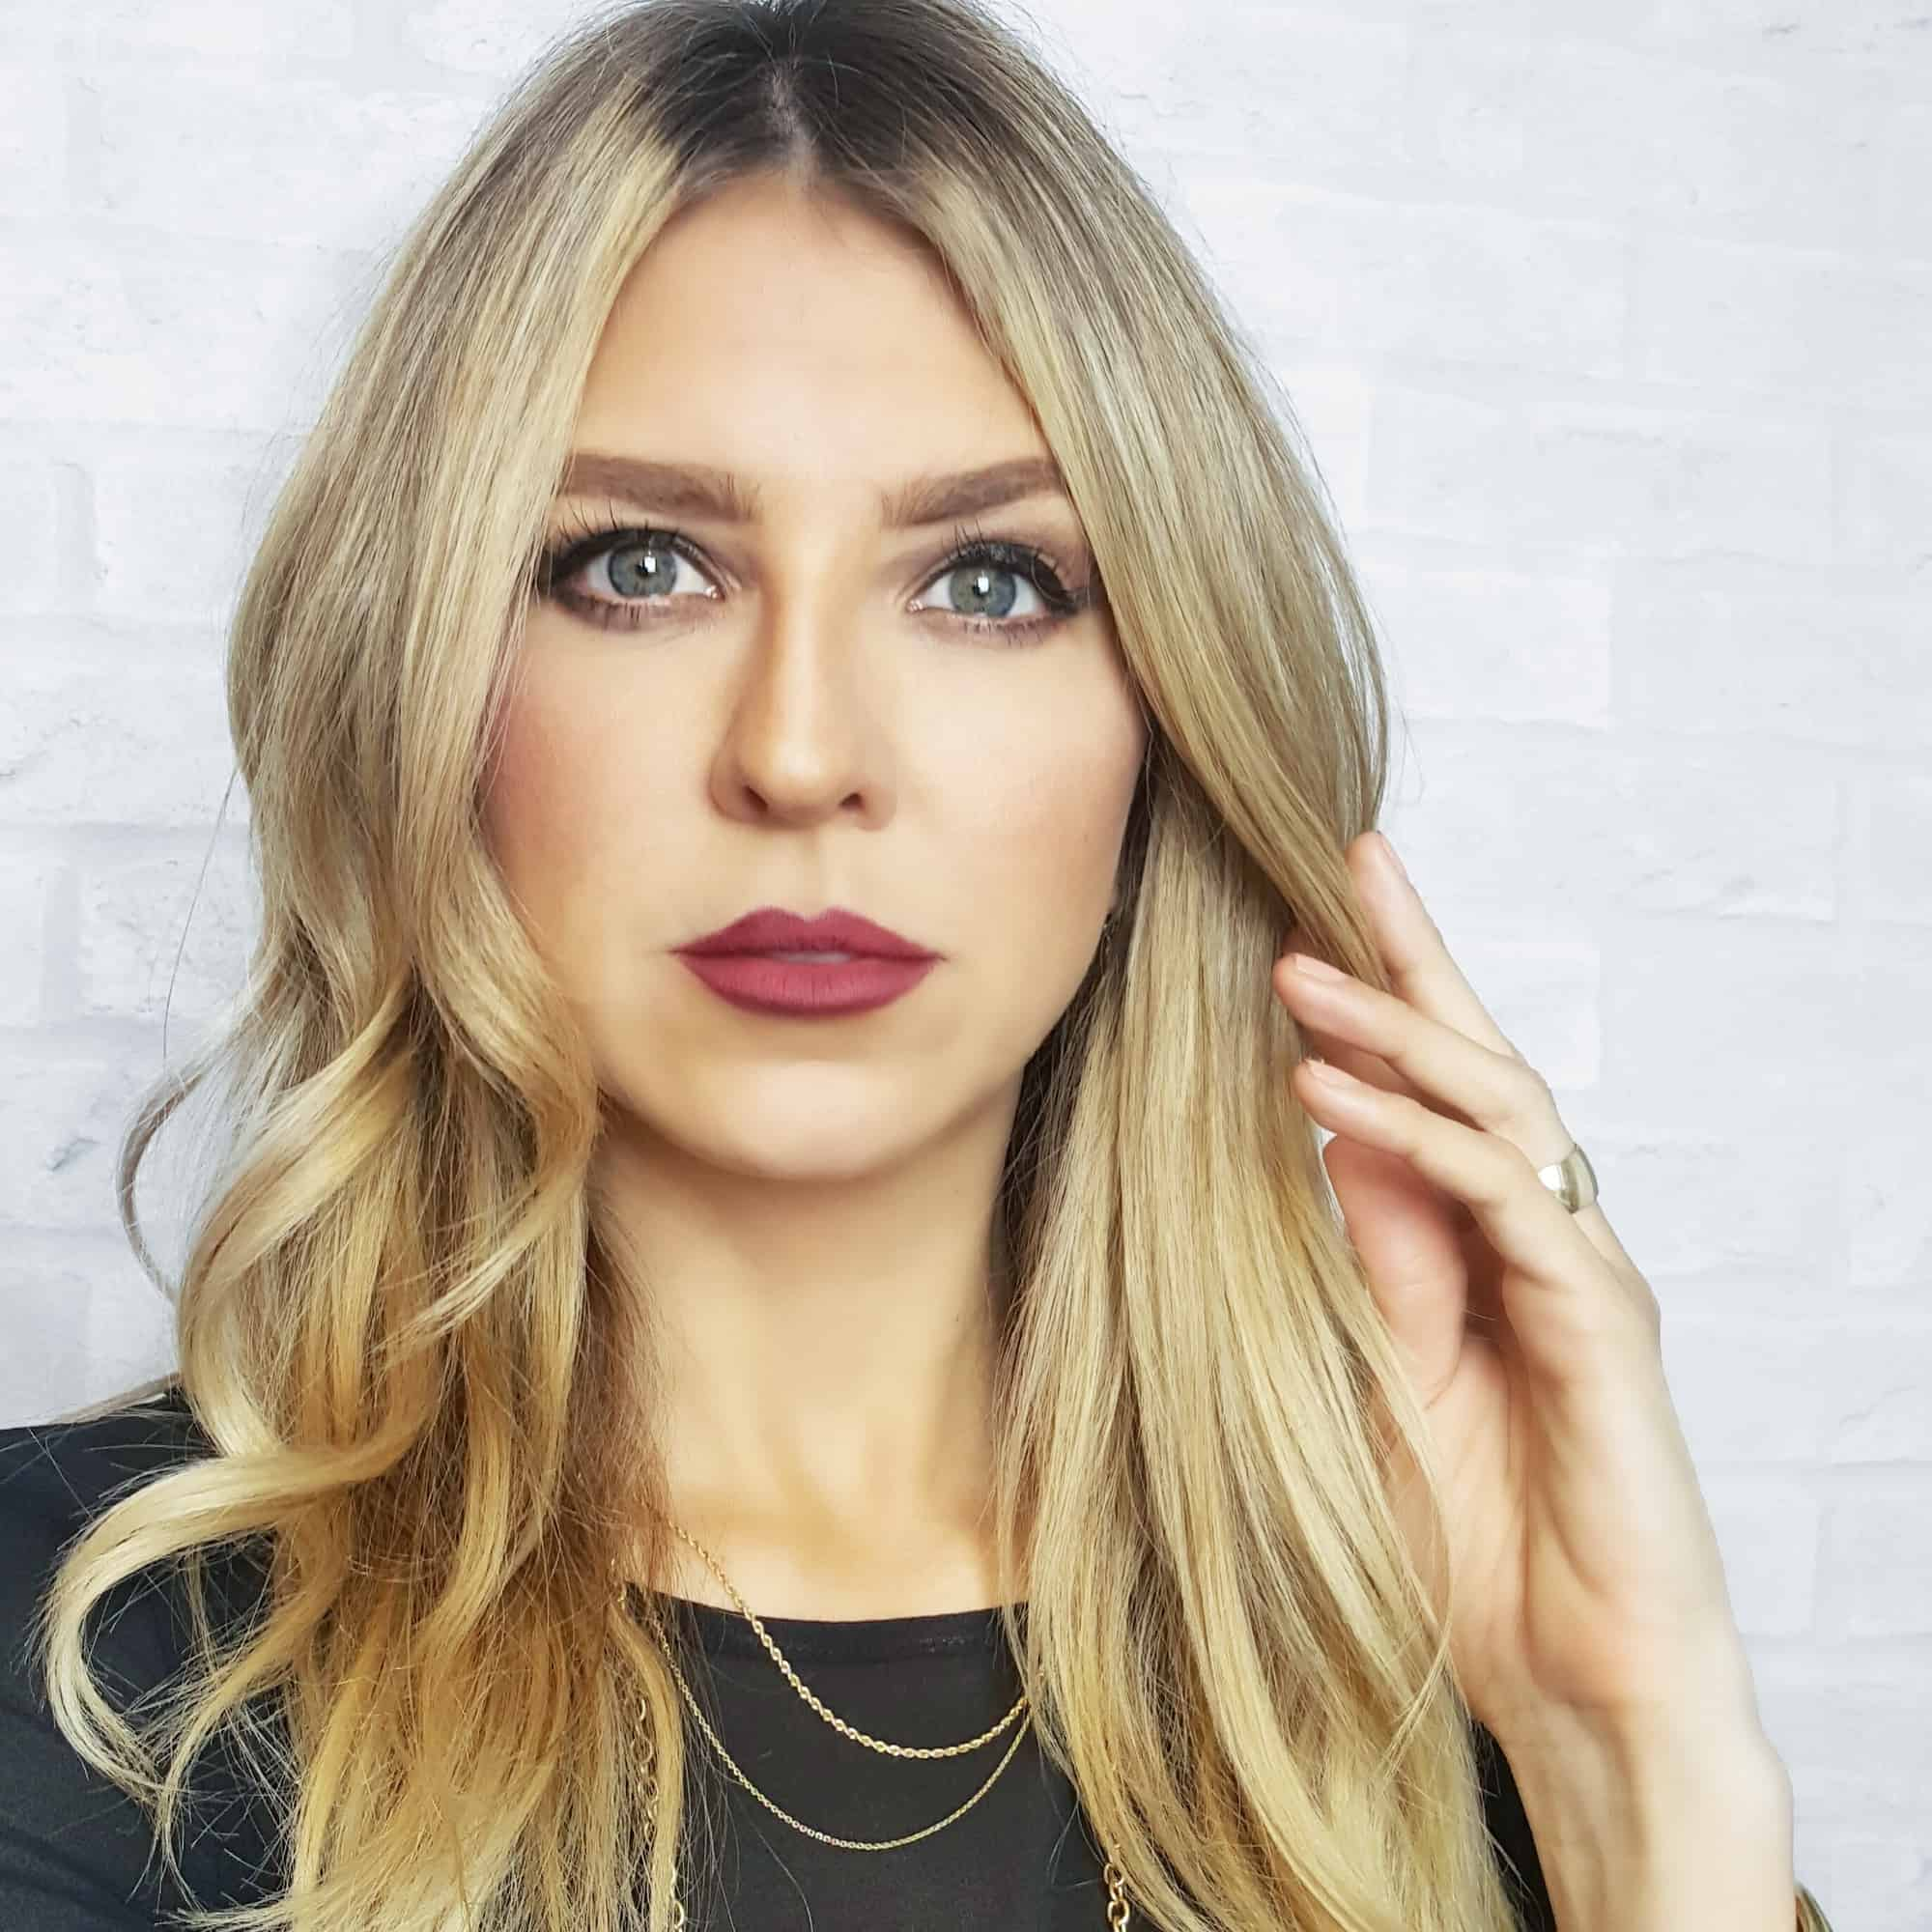 Nikki Hynek, Founder and Creator of the Dollup Case, is a makeup artist maven fully immersed in the world of high fashion, color, inked eyes, tinseled lashes and girl-next-store skin.